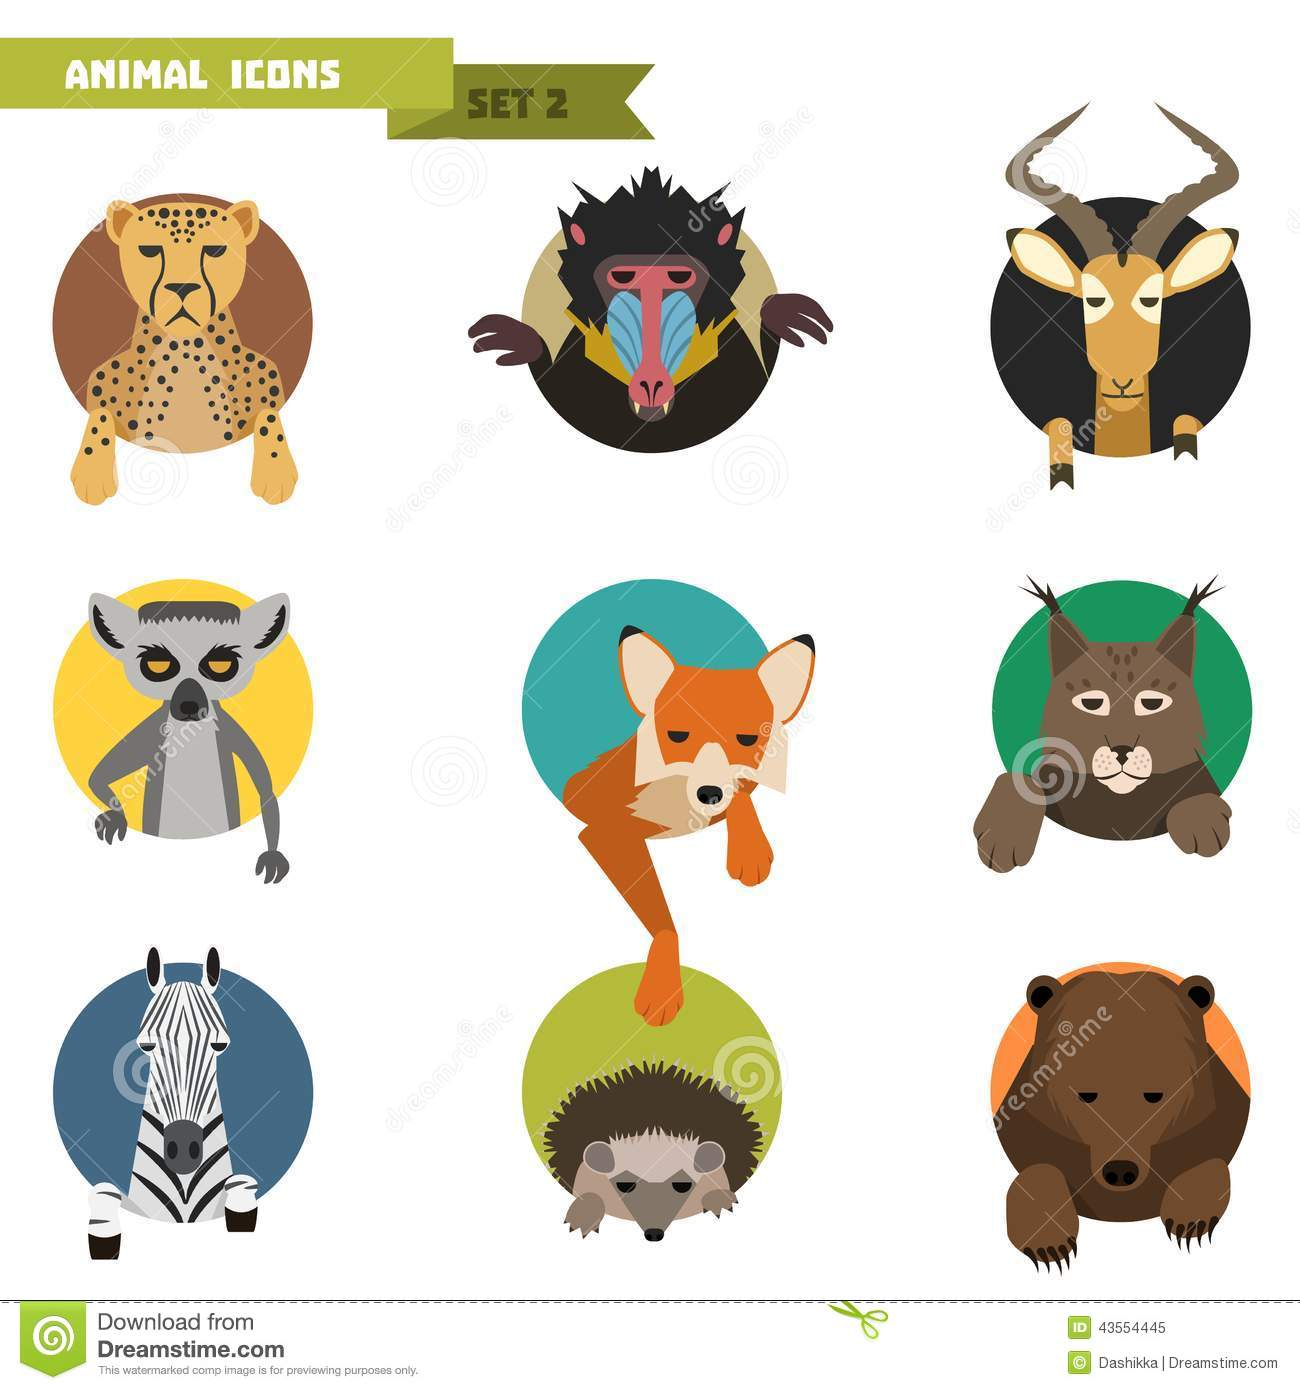 Avatar 2 Animals: Animal Avatars. Vector Illustration Stock Illustration